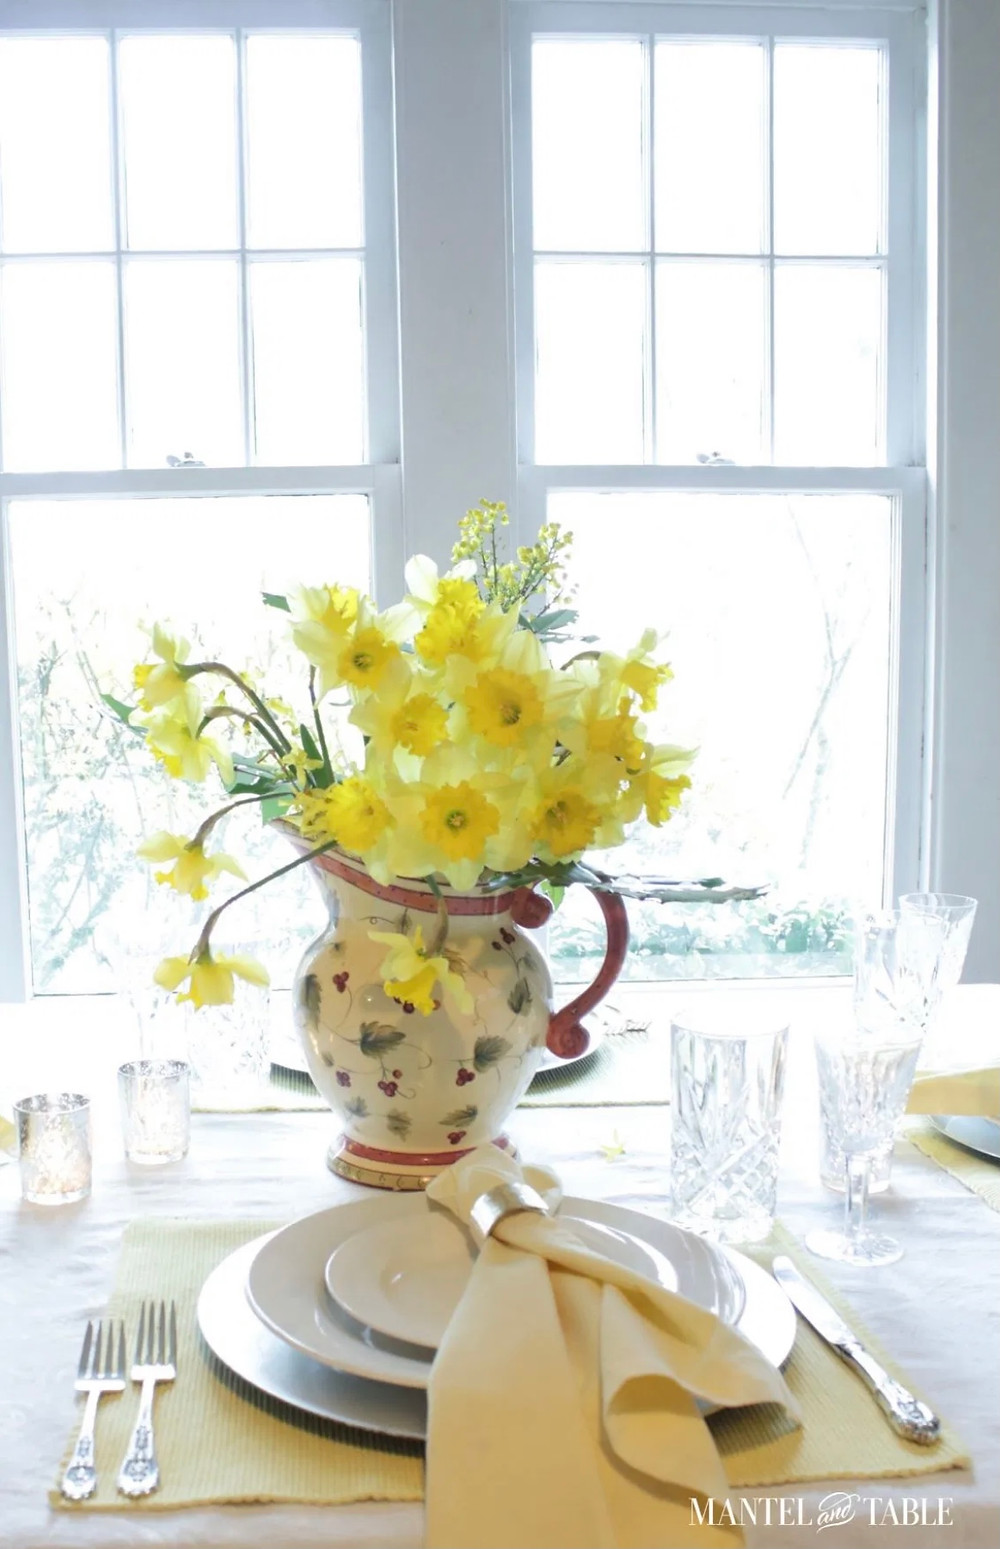 A Daffodil Table Setting on a Beautiful Snow Day